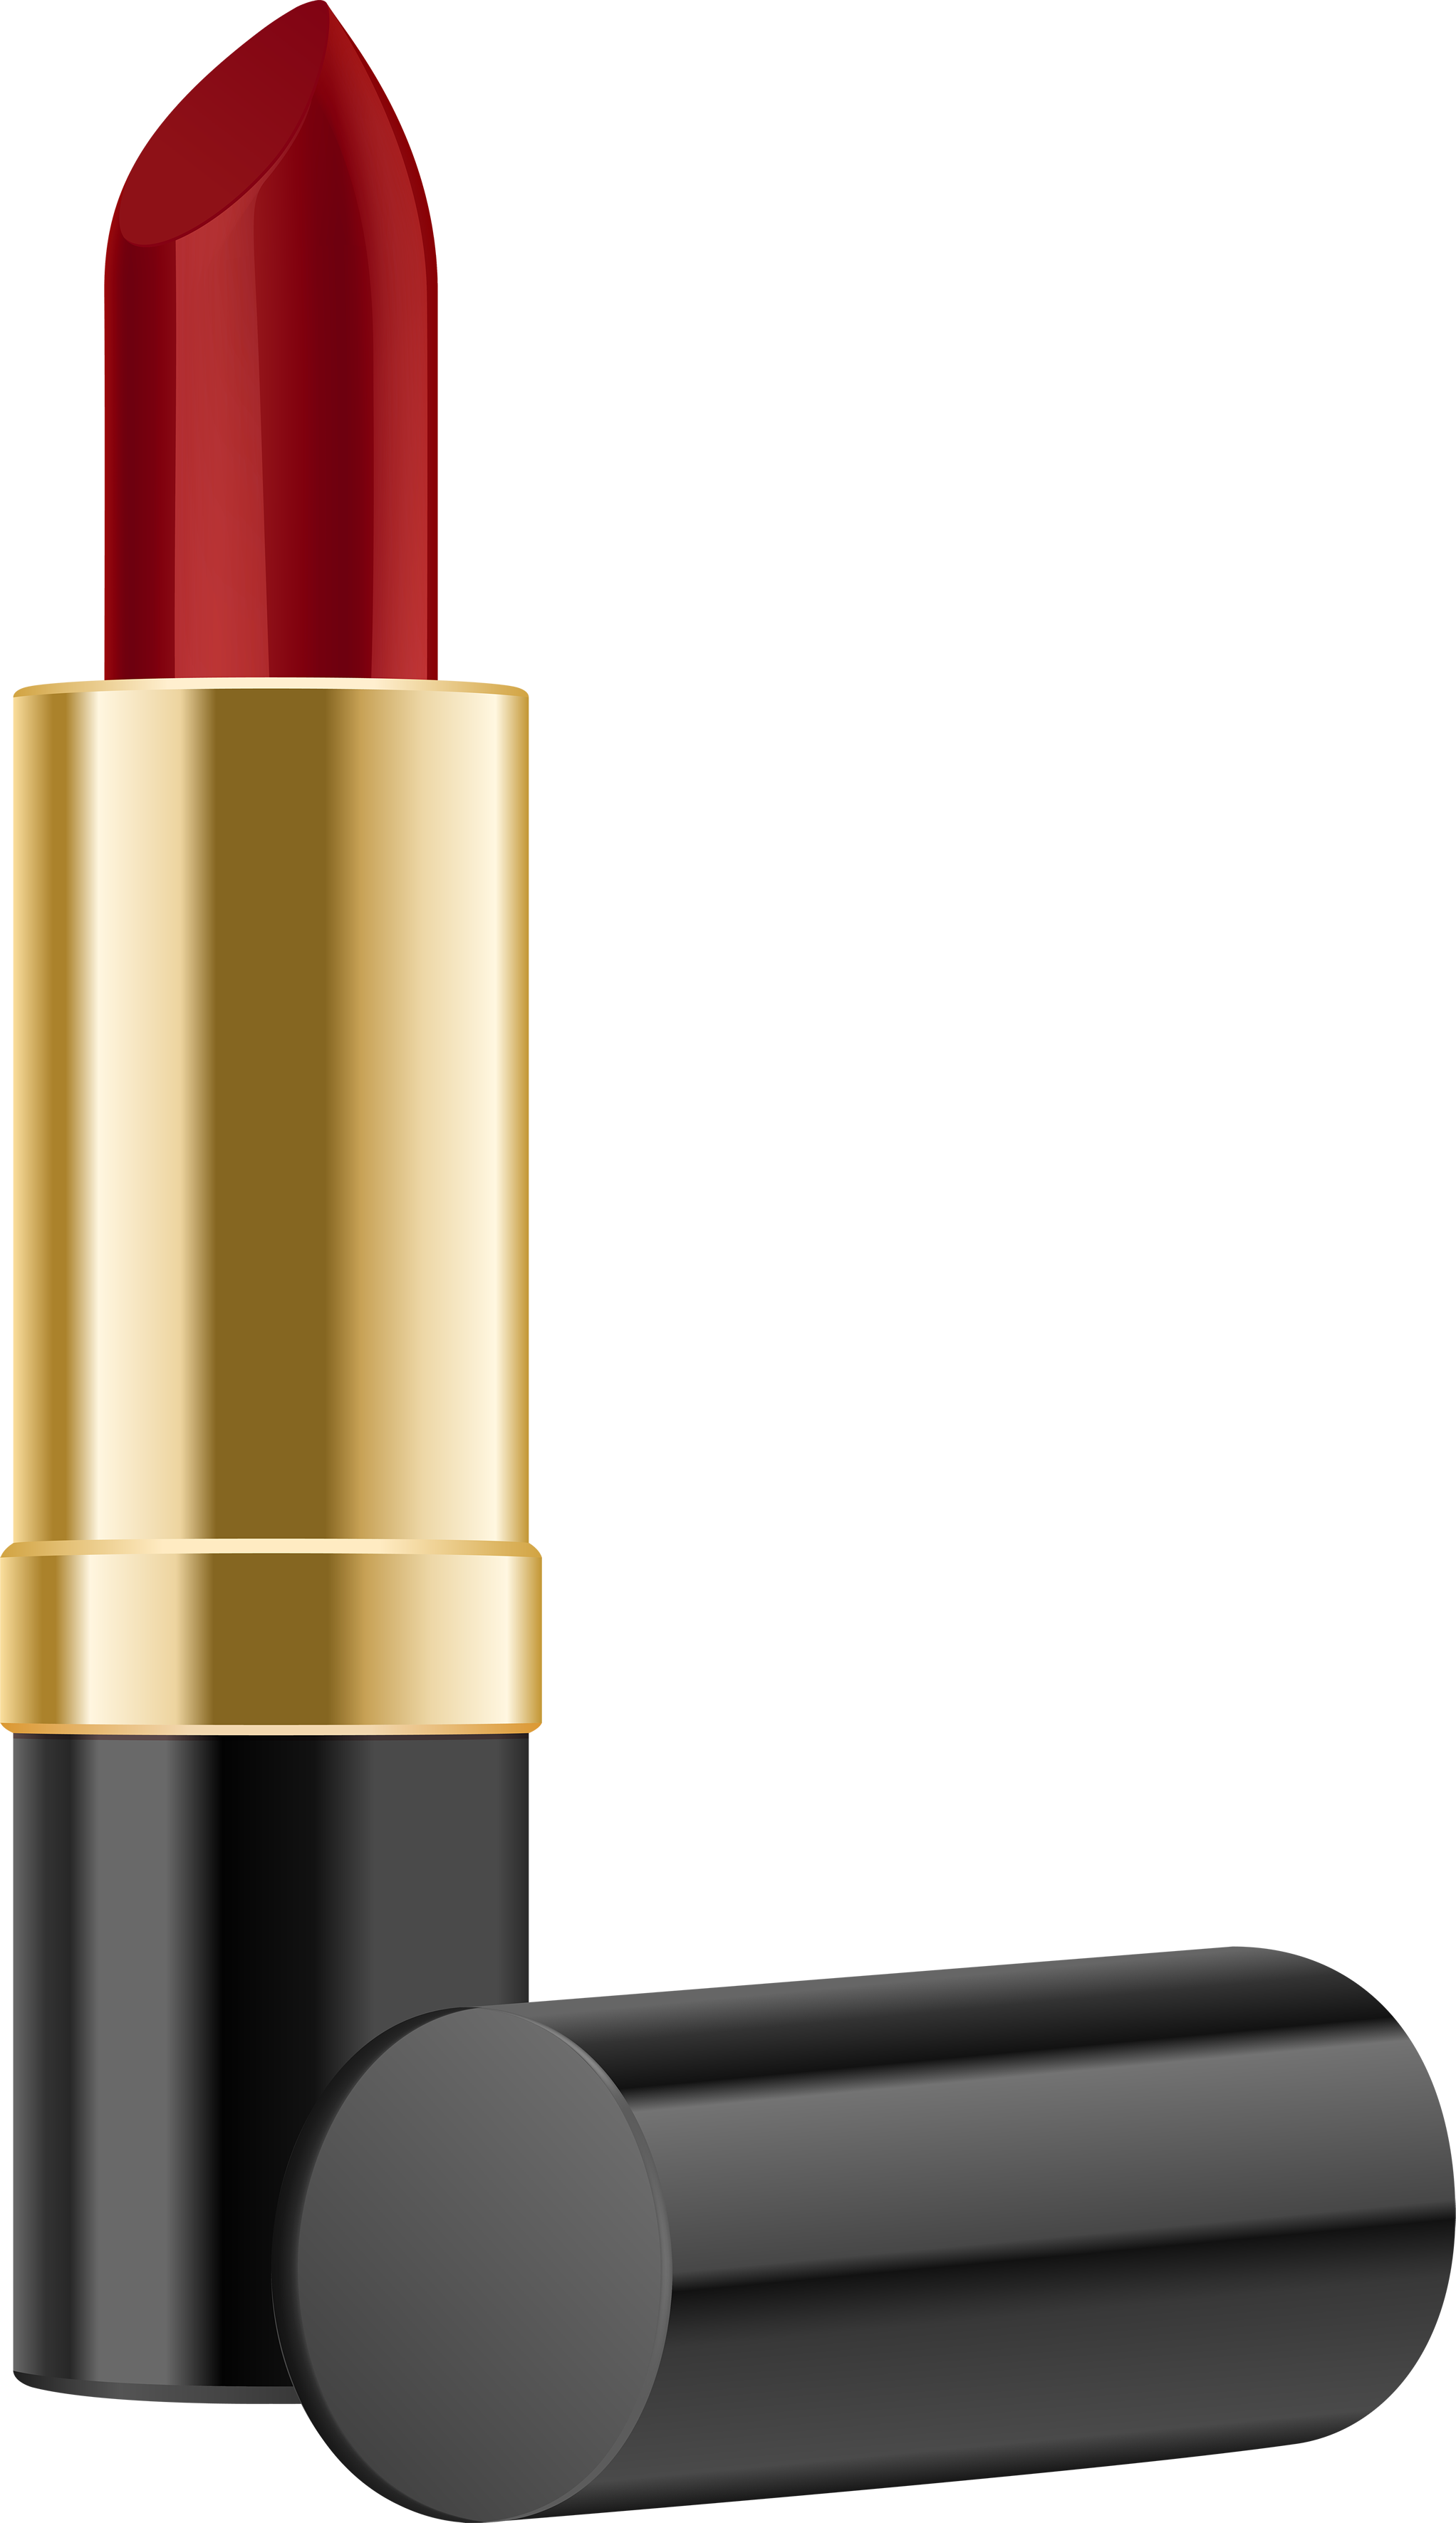 Makeup clipart red lipstick, Makeup red lipstick Transparent.